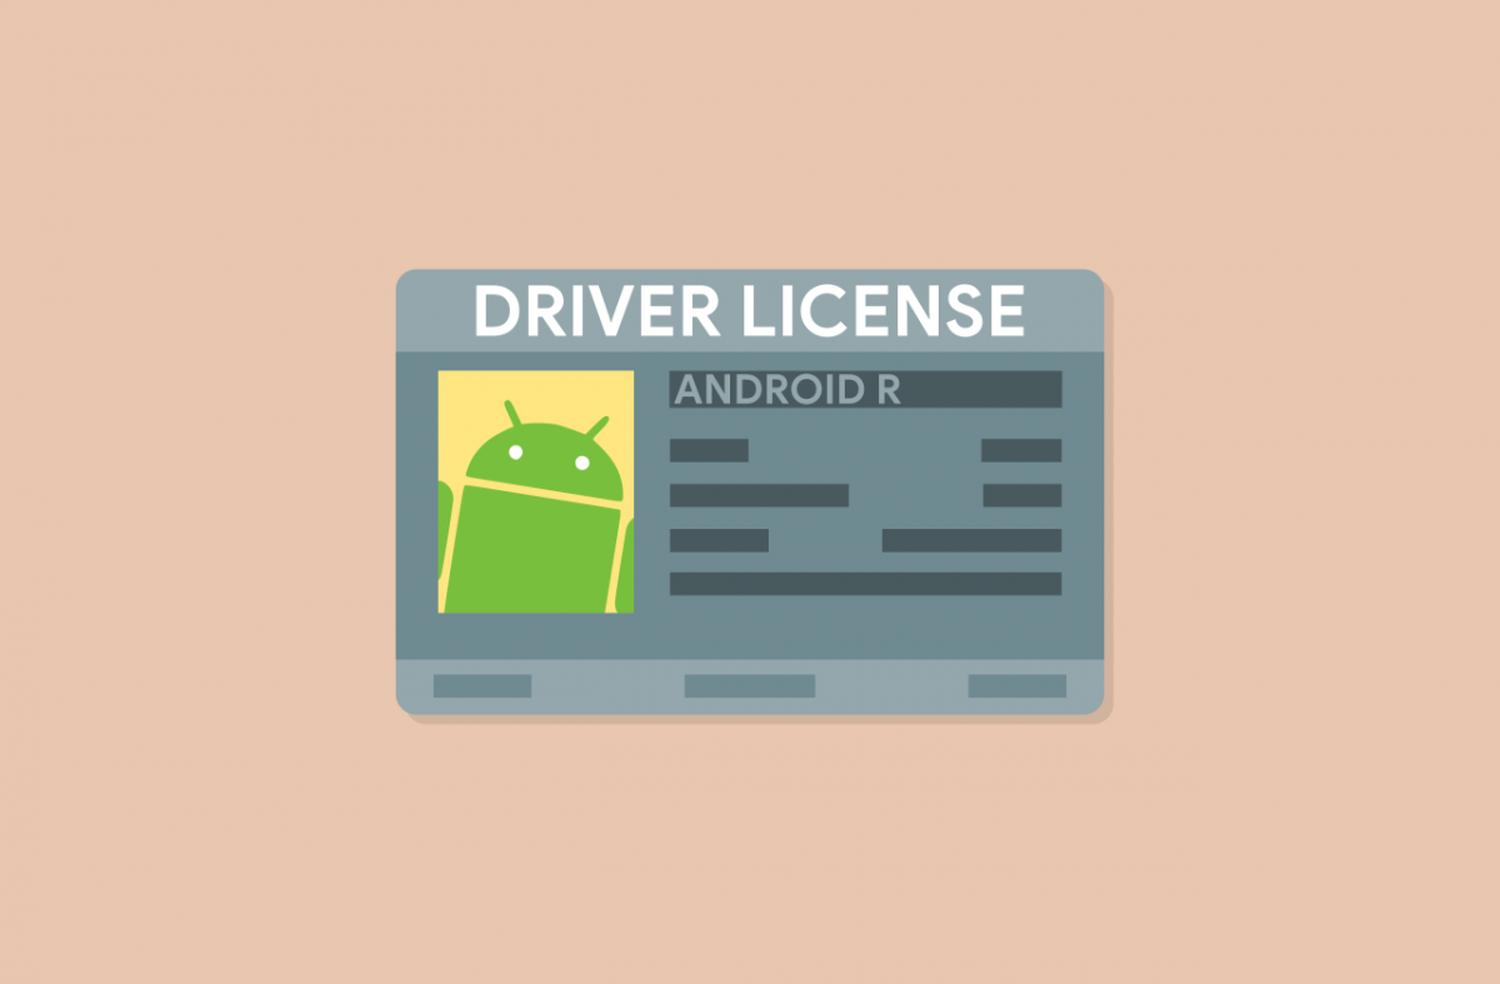 android r drivers license